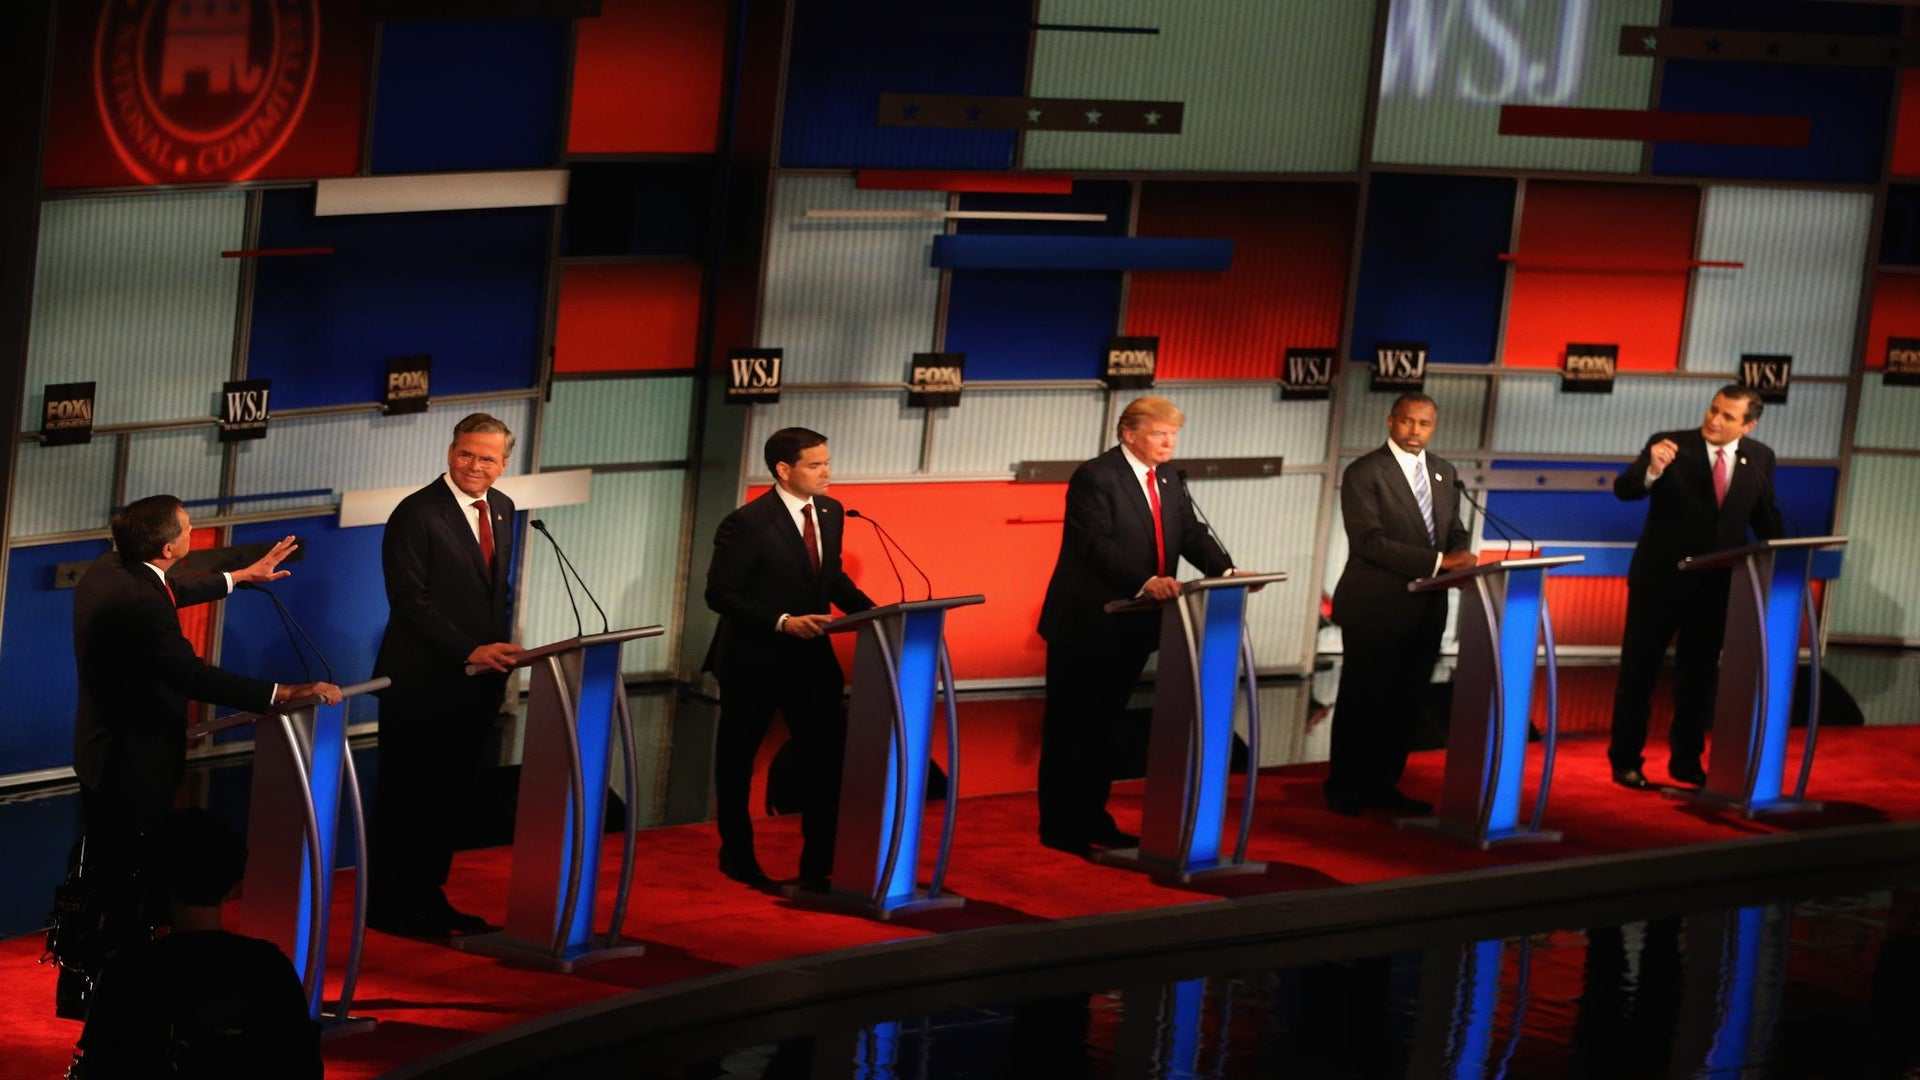 Top 5 Takeaways From the Final Republican Debate before the Iowa Caucus